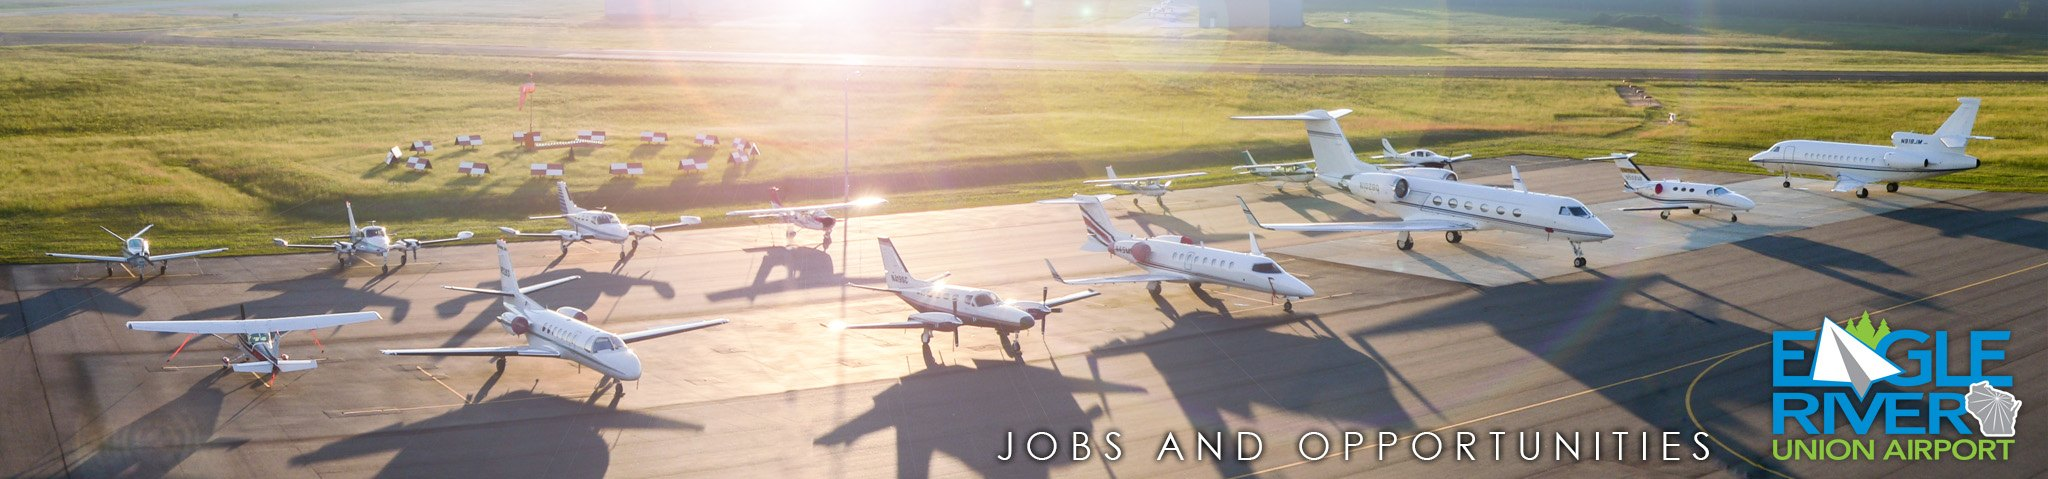 Eagle River Union Airport Job Opportunities